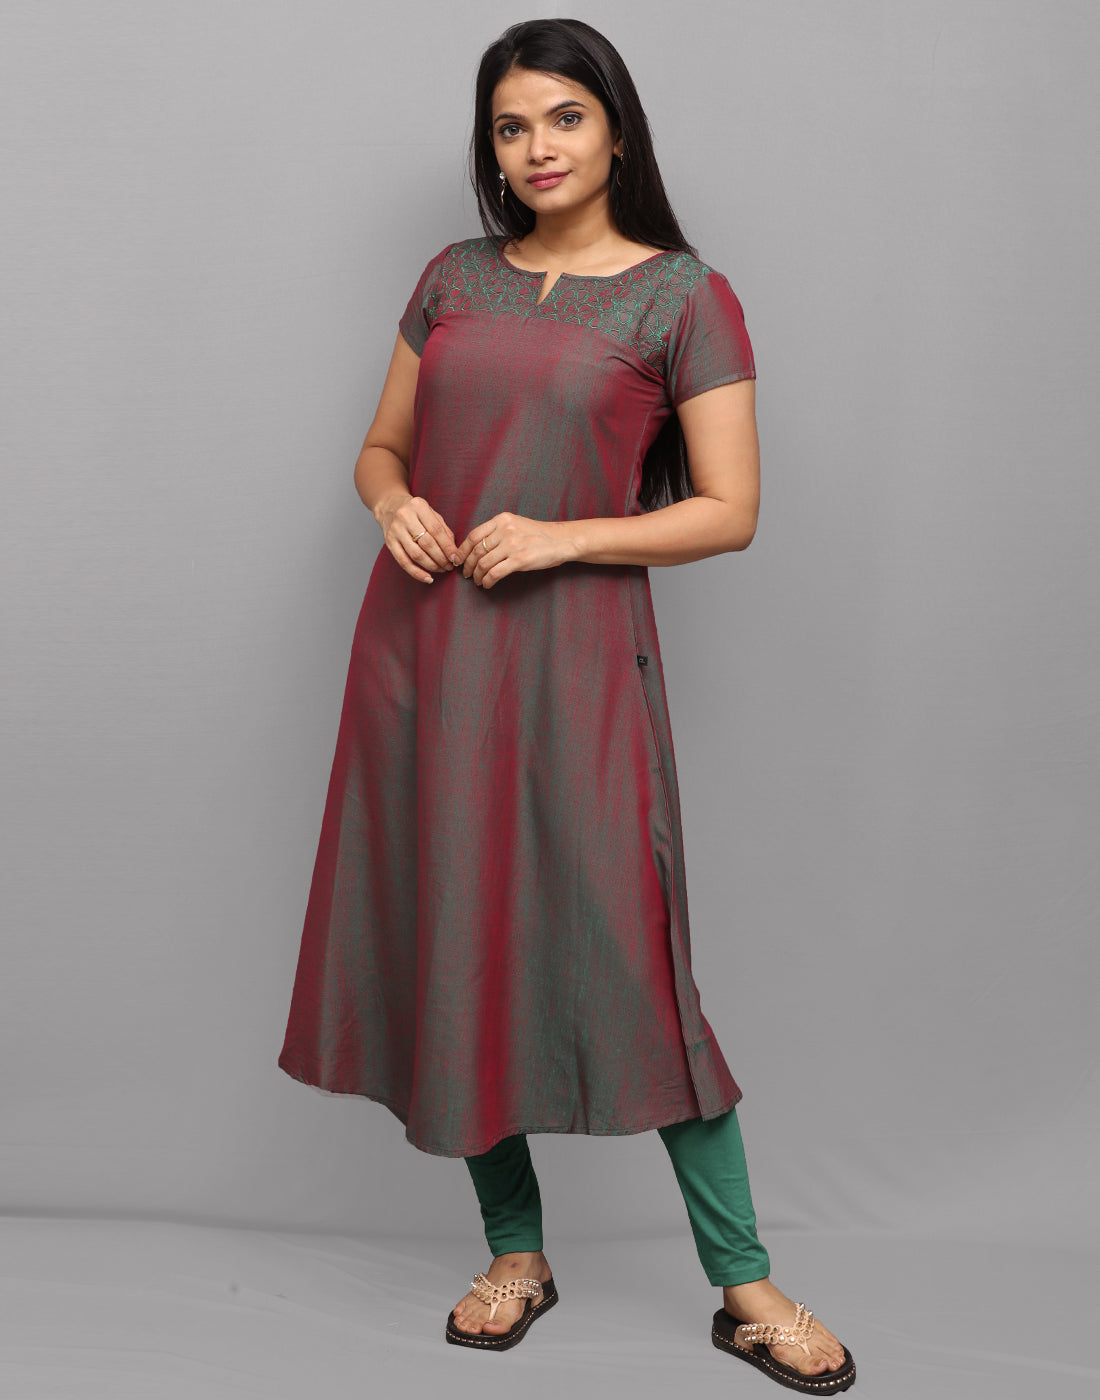 Buy Designer Women Kurtas, Trendy Salwar Kameez, Leggings, Indian